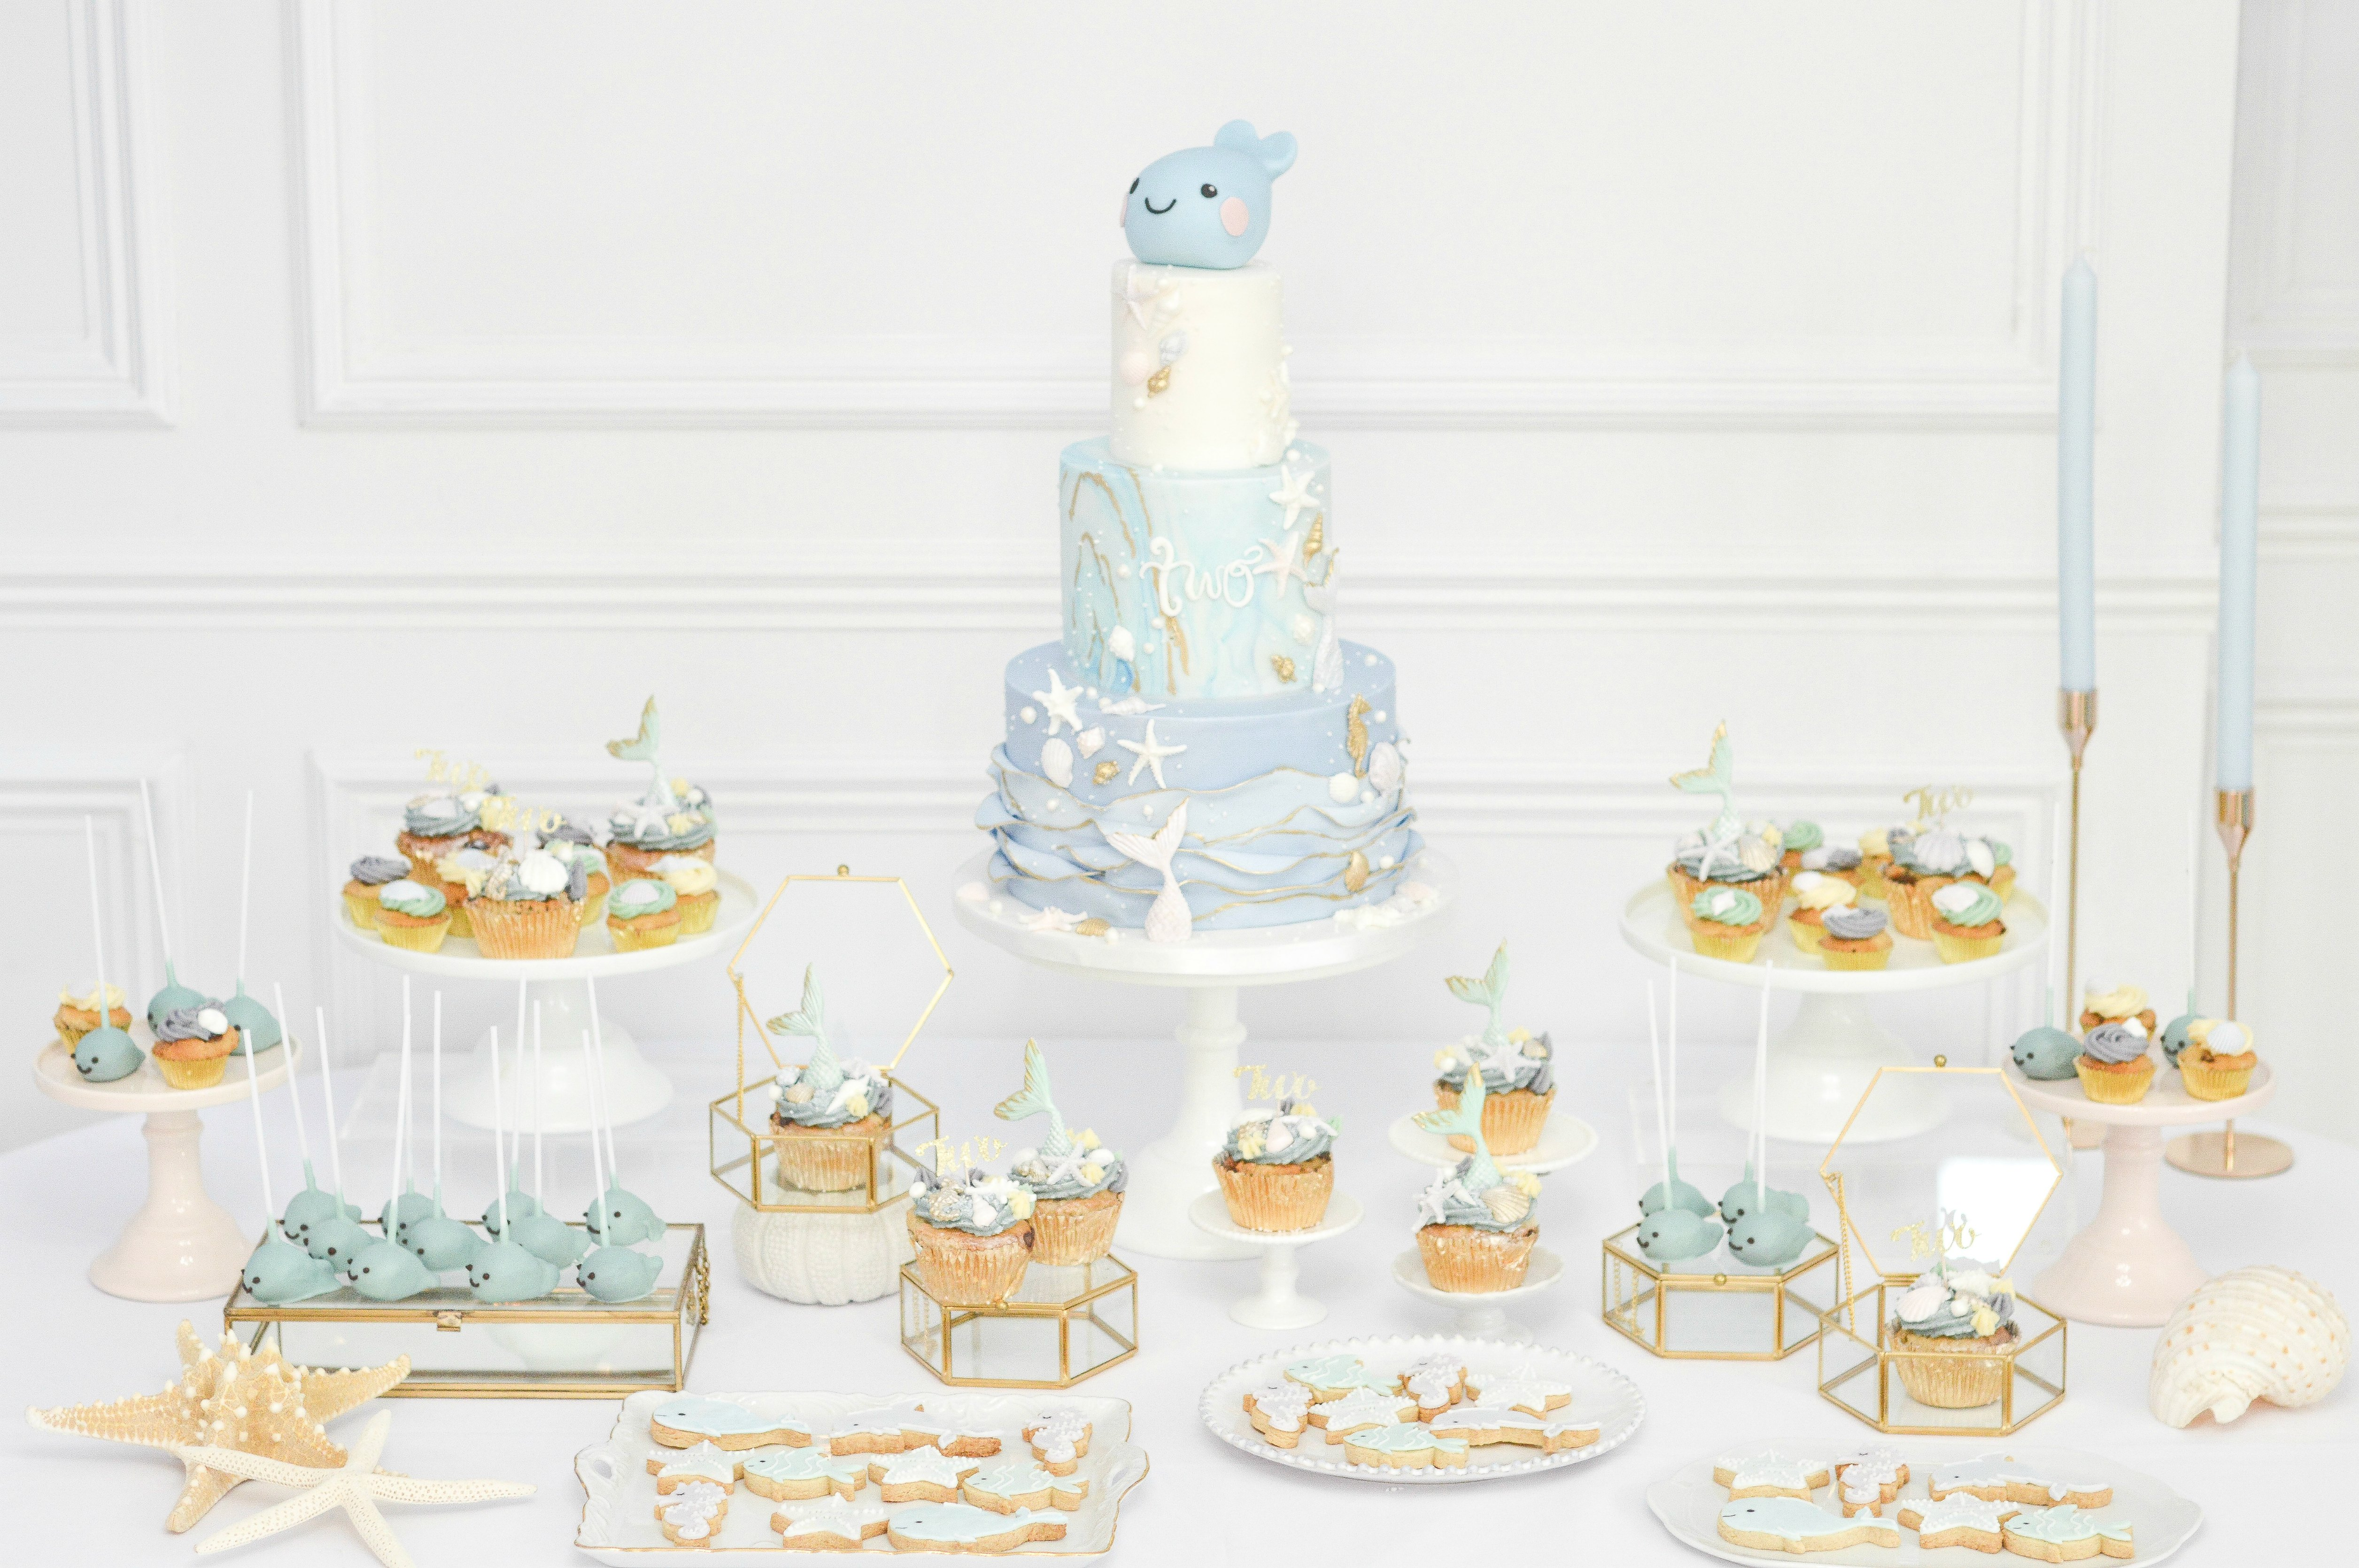 Under the sea themed birthday party cake dessert table cookies mermaid cakepops cupcakes Cherie Kelly cakes